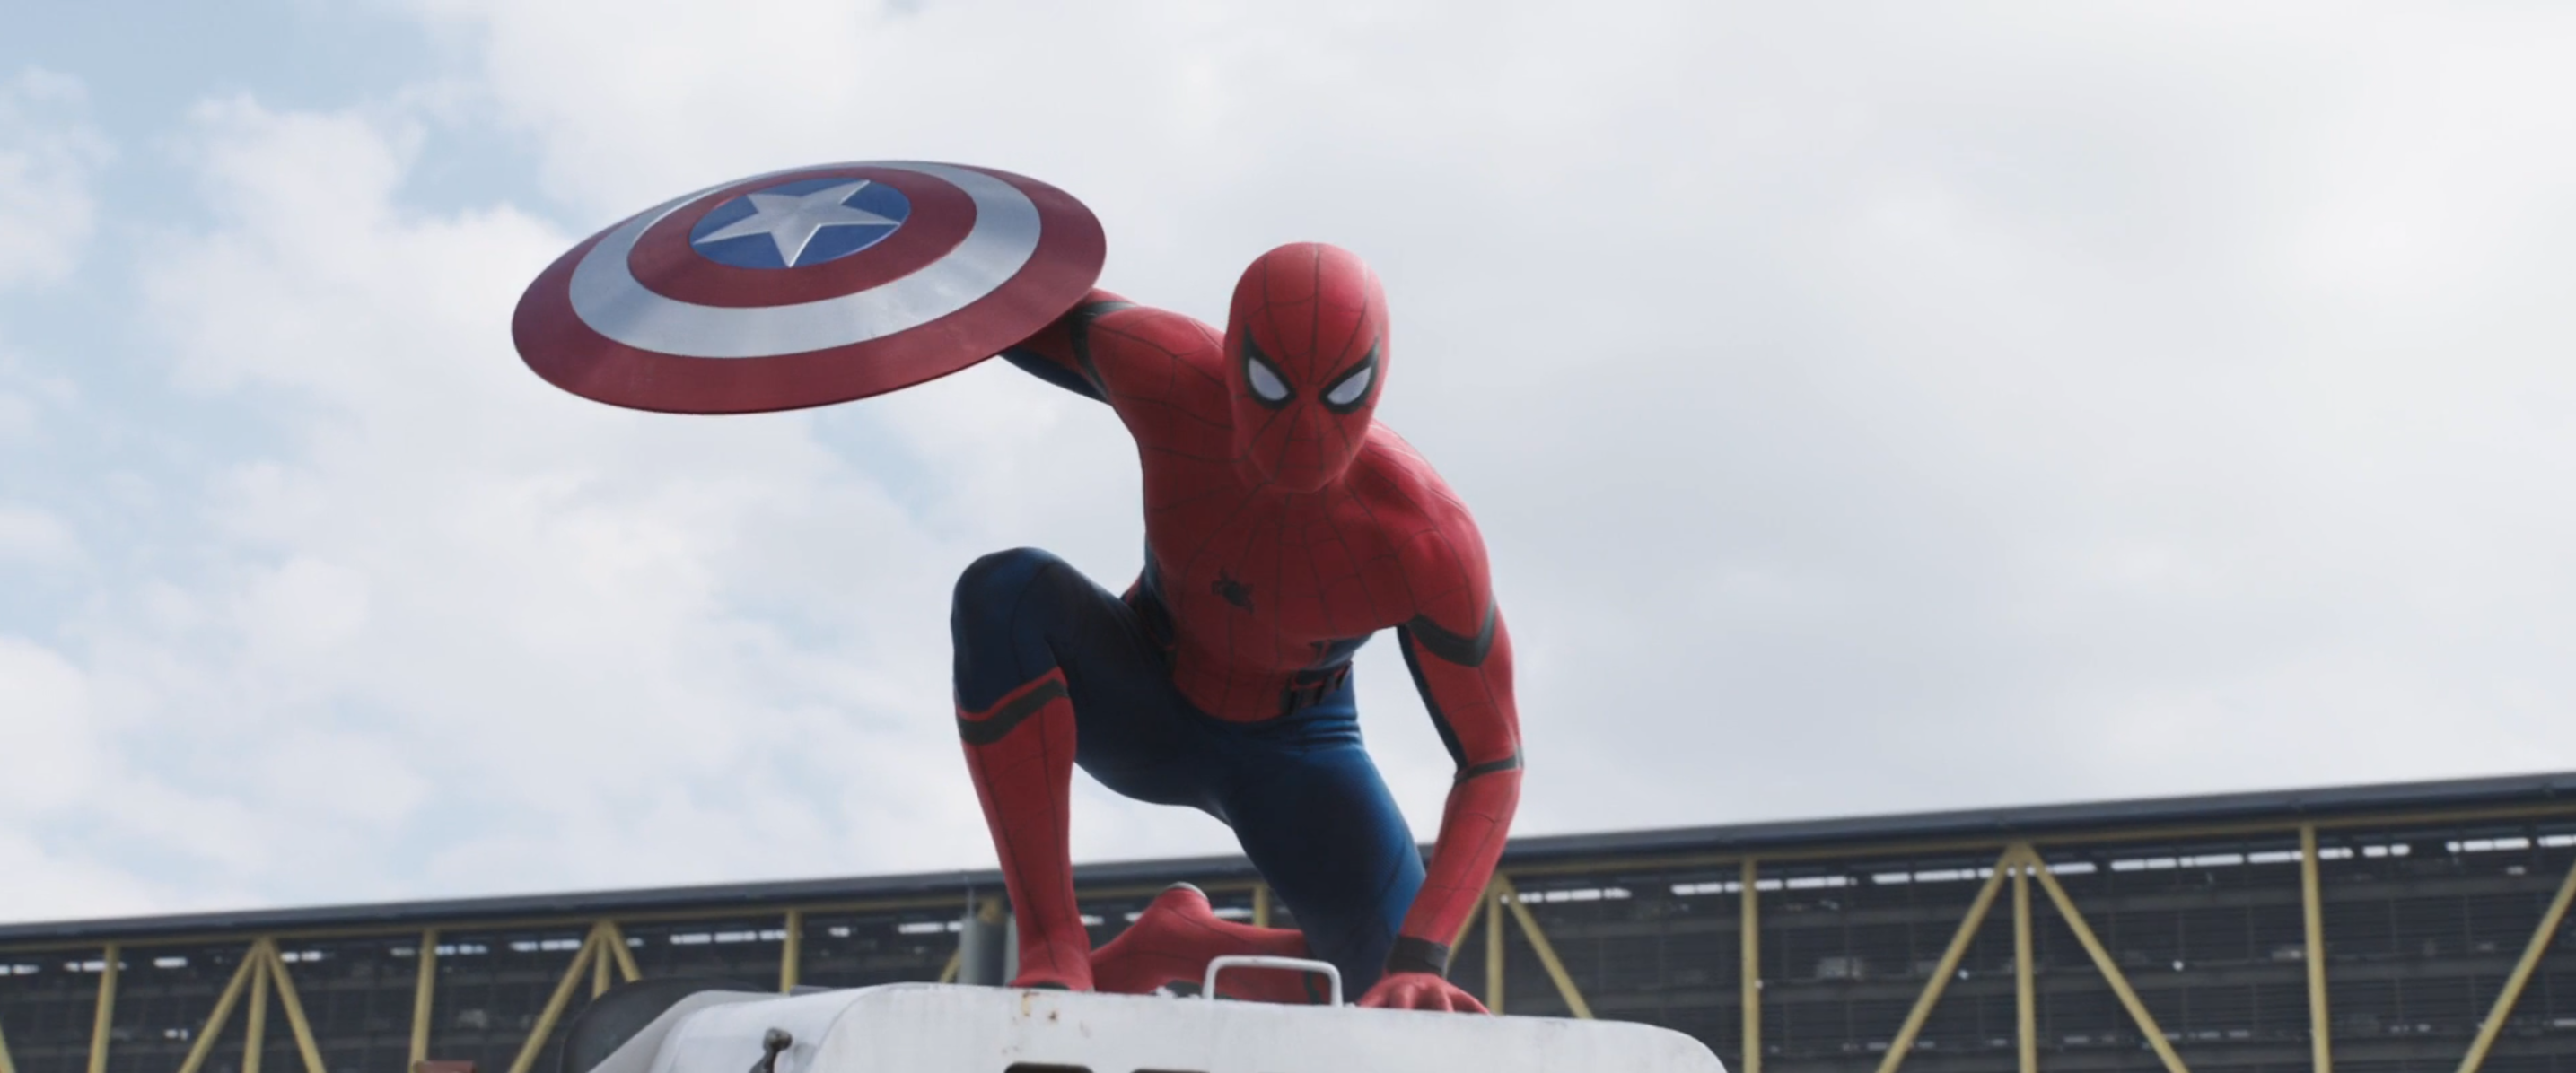 Captain America: Civil War: la prima apparizione di Spider-Man nel trailer 2 del film